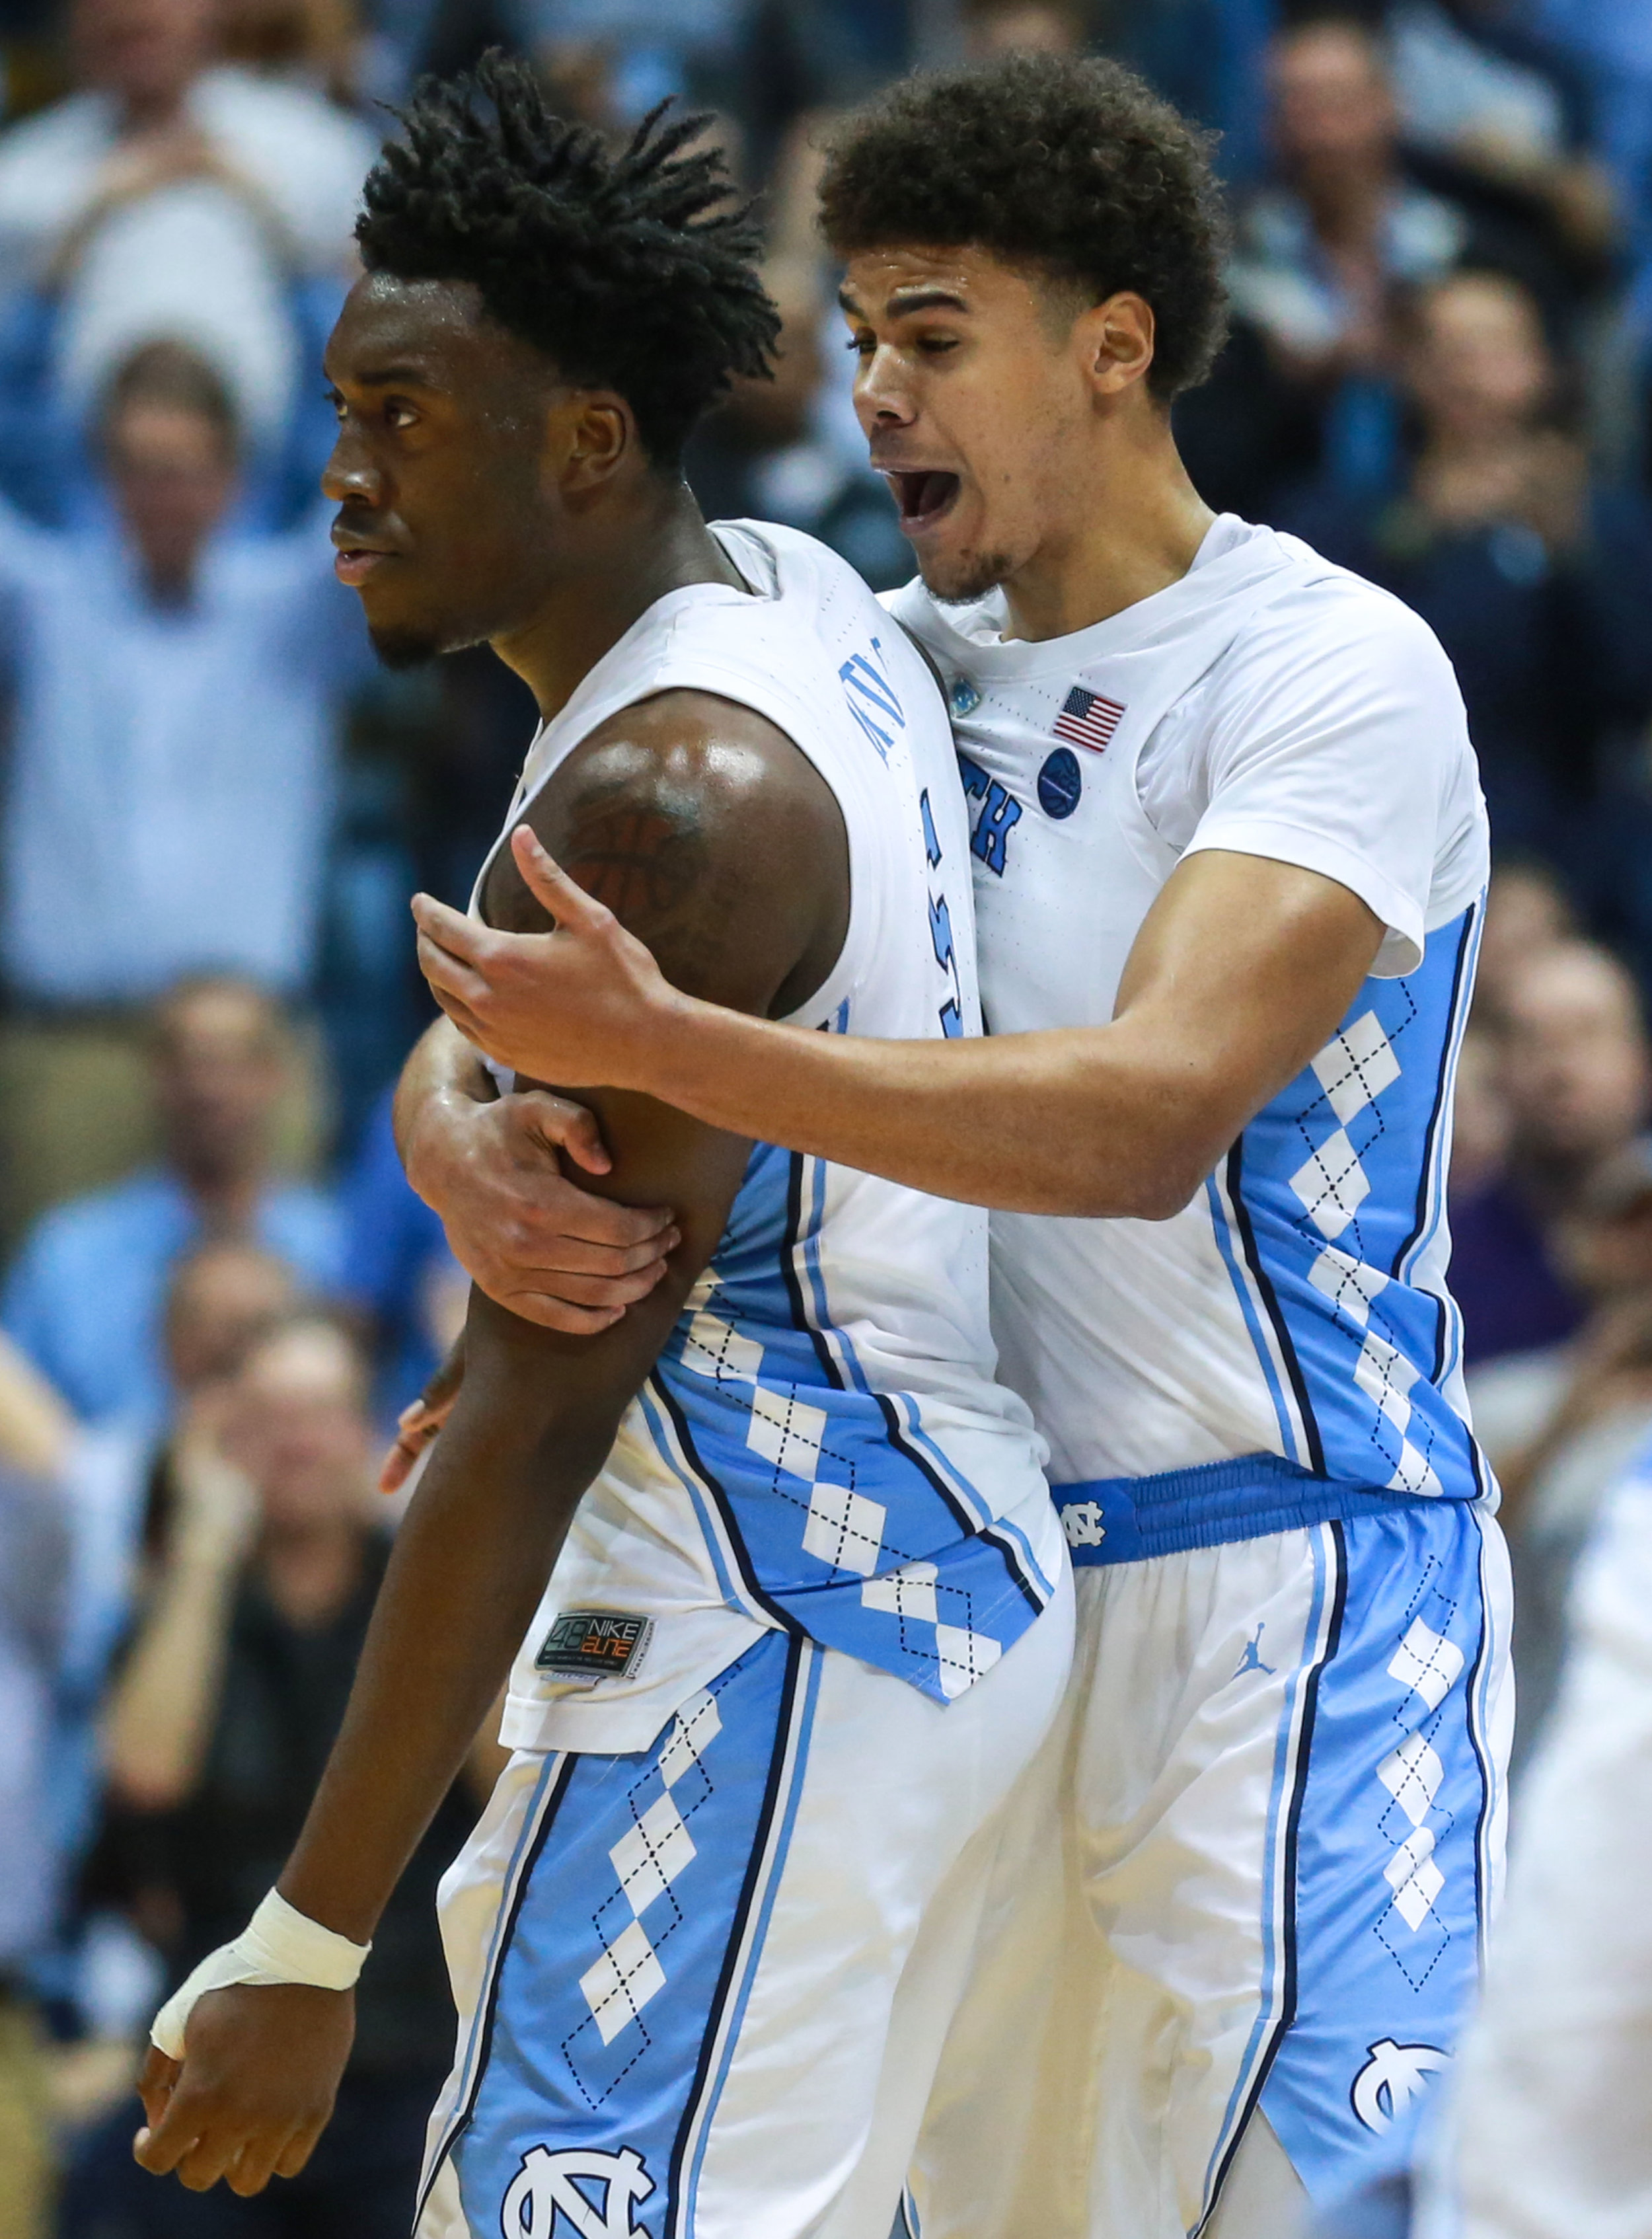 Cameron Johnson hypes up Nassir Little after an And-1 bucker during UNC's win over FSU. The graduate transfer and freshmen tied for the lead in points for UNC, each bringing in 18 over the course of the afternoon. | Photo by Alex Kormann